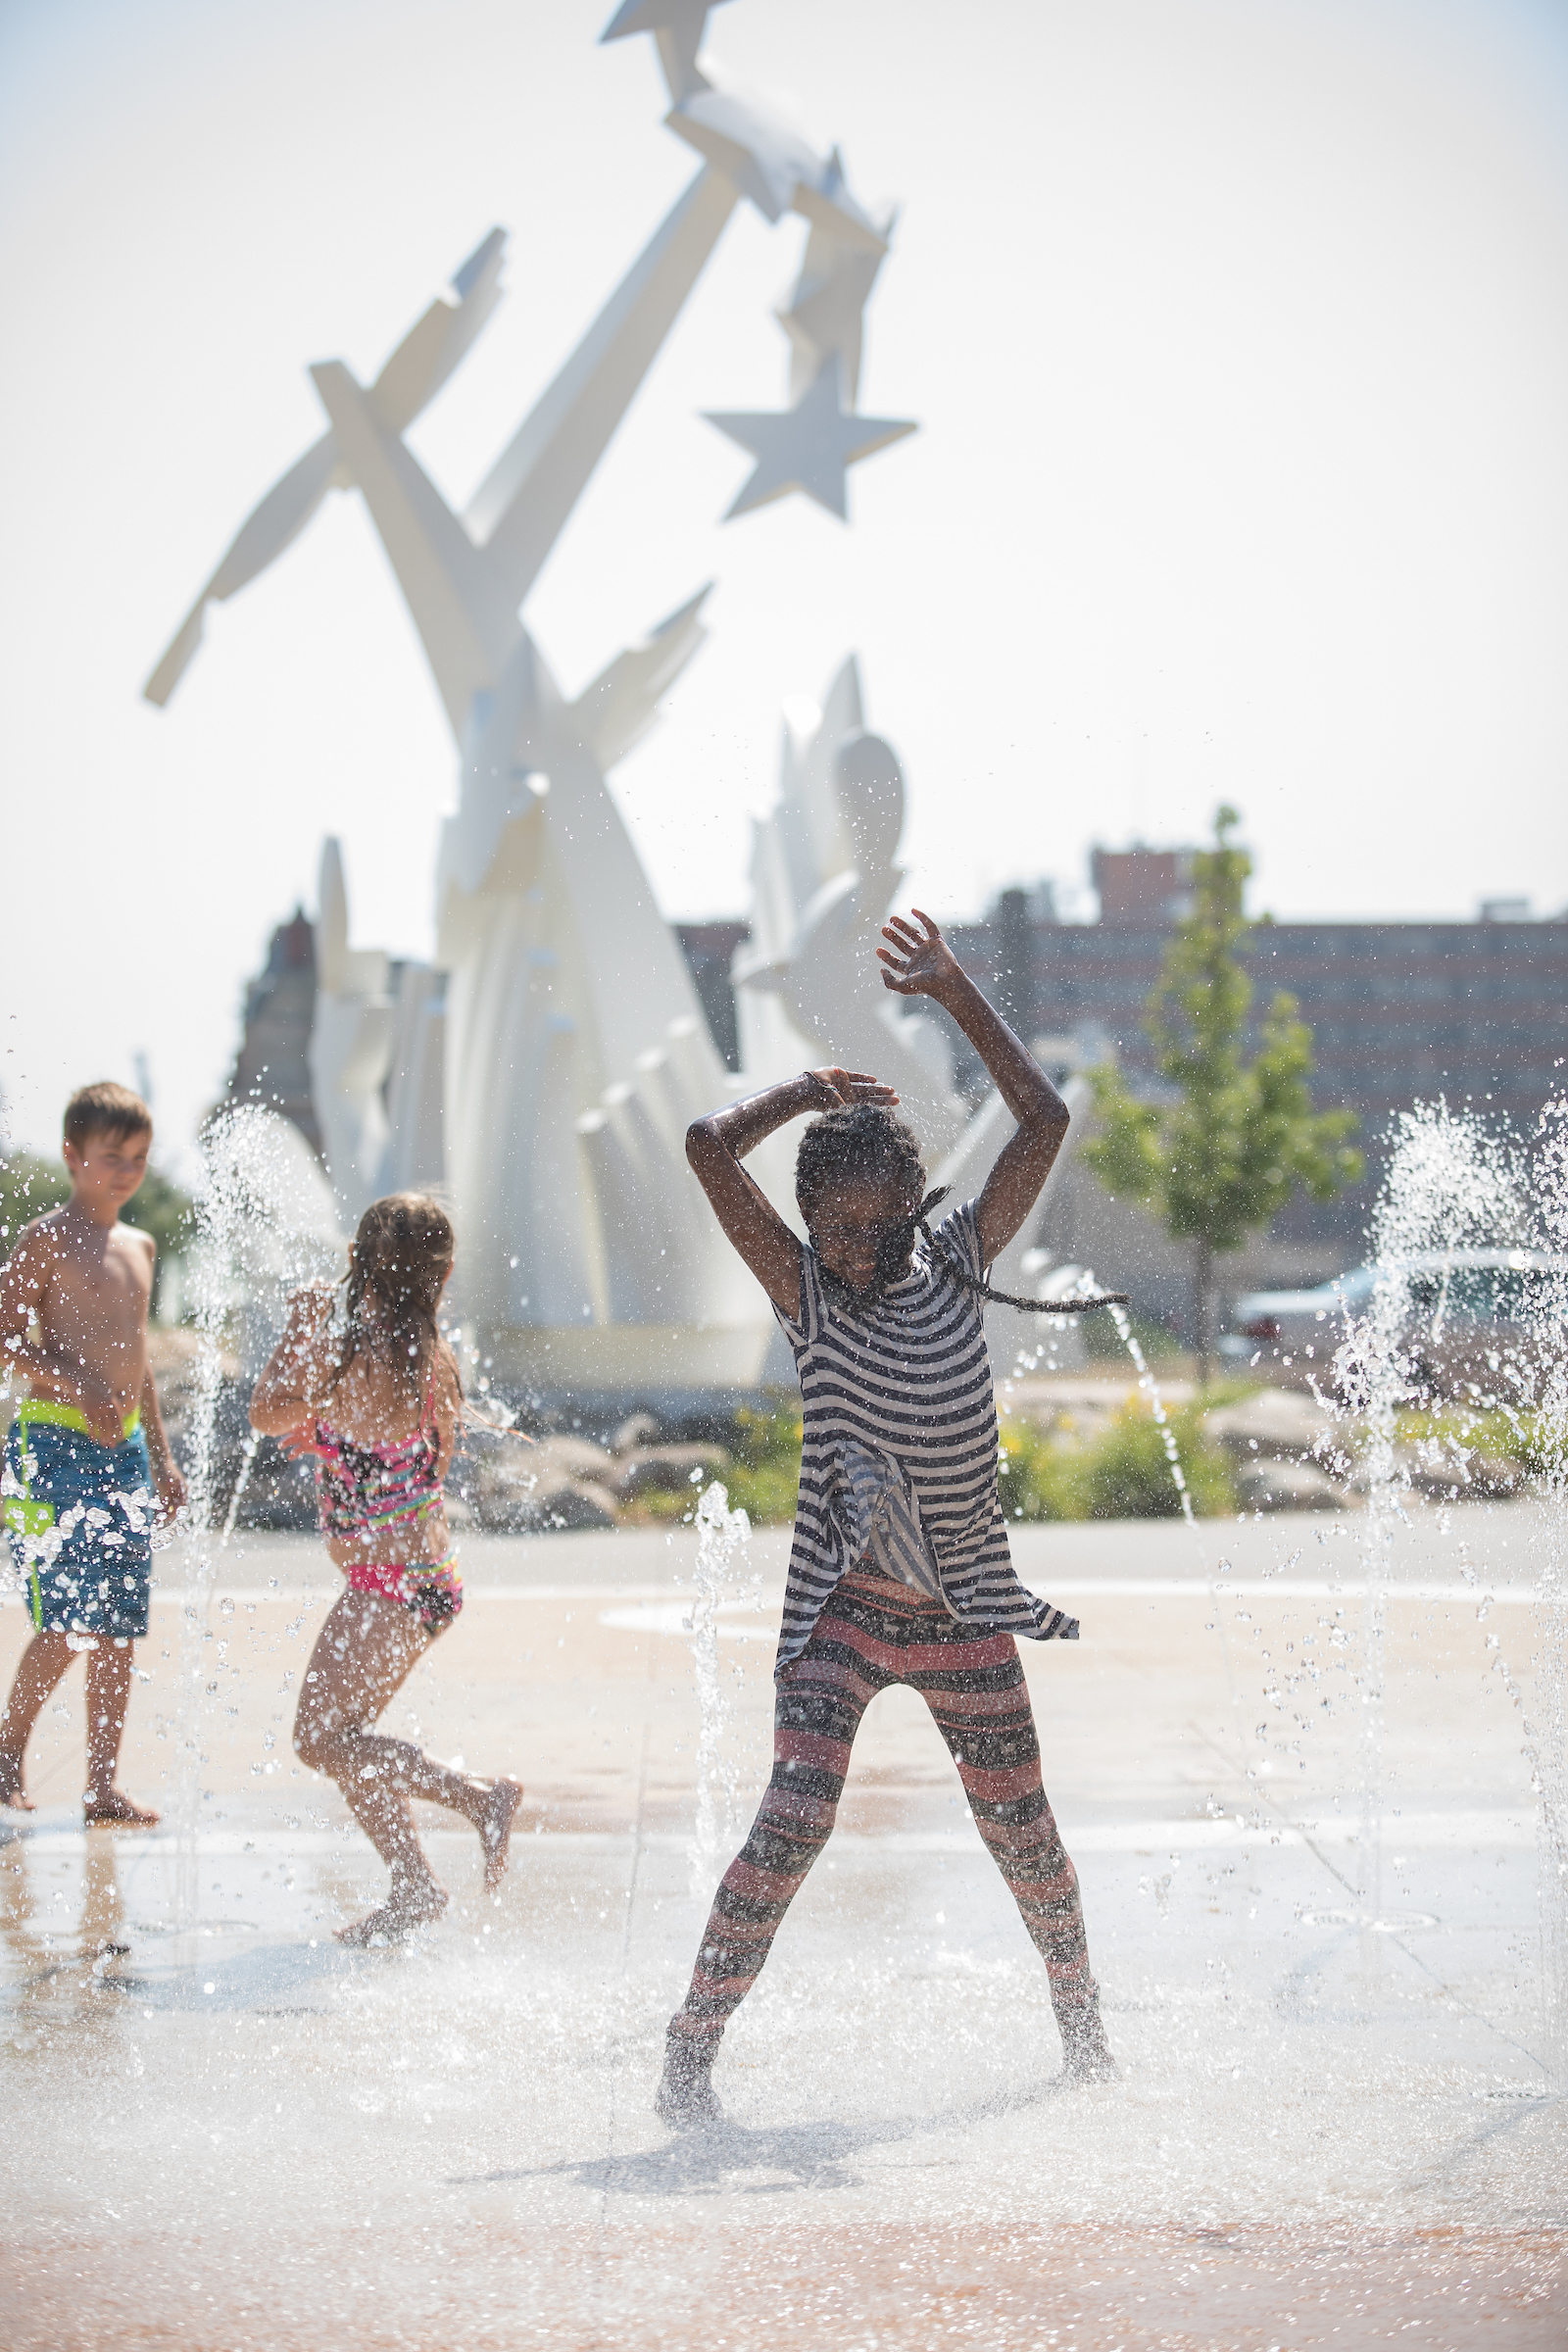 laughing girl with arms upraised plays in splash pad. white modern sculpture and playing children in background